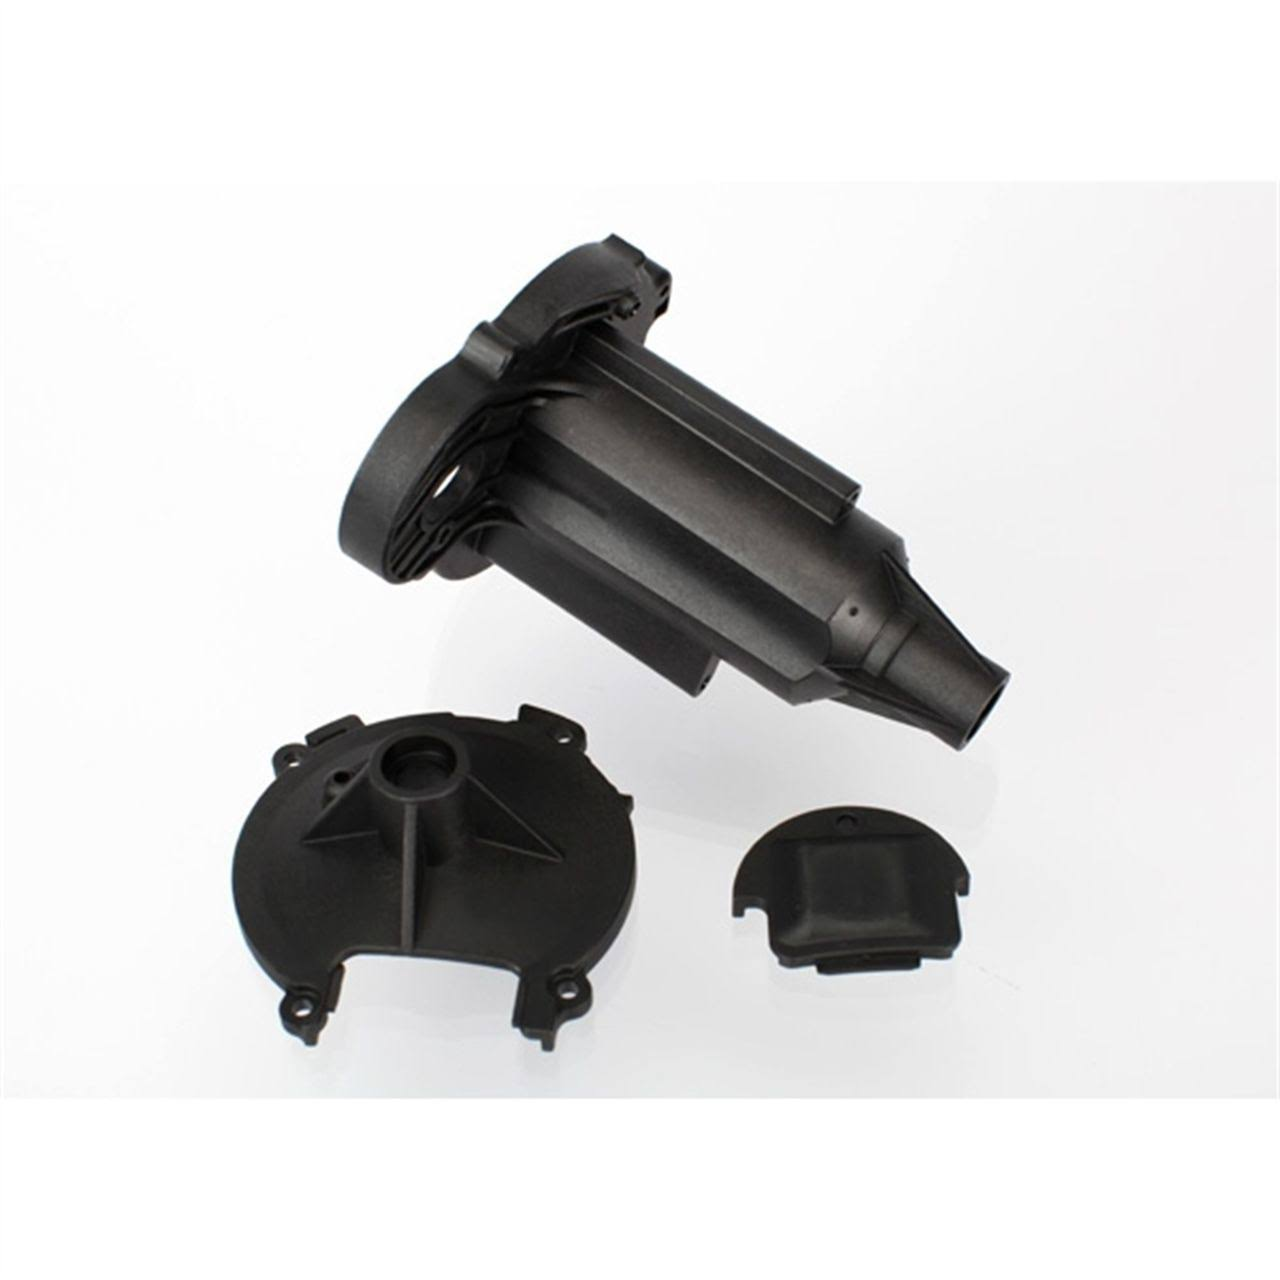 Traxxas 6991 - Gearbox Housing Rear/Pinion Access Cover